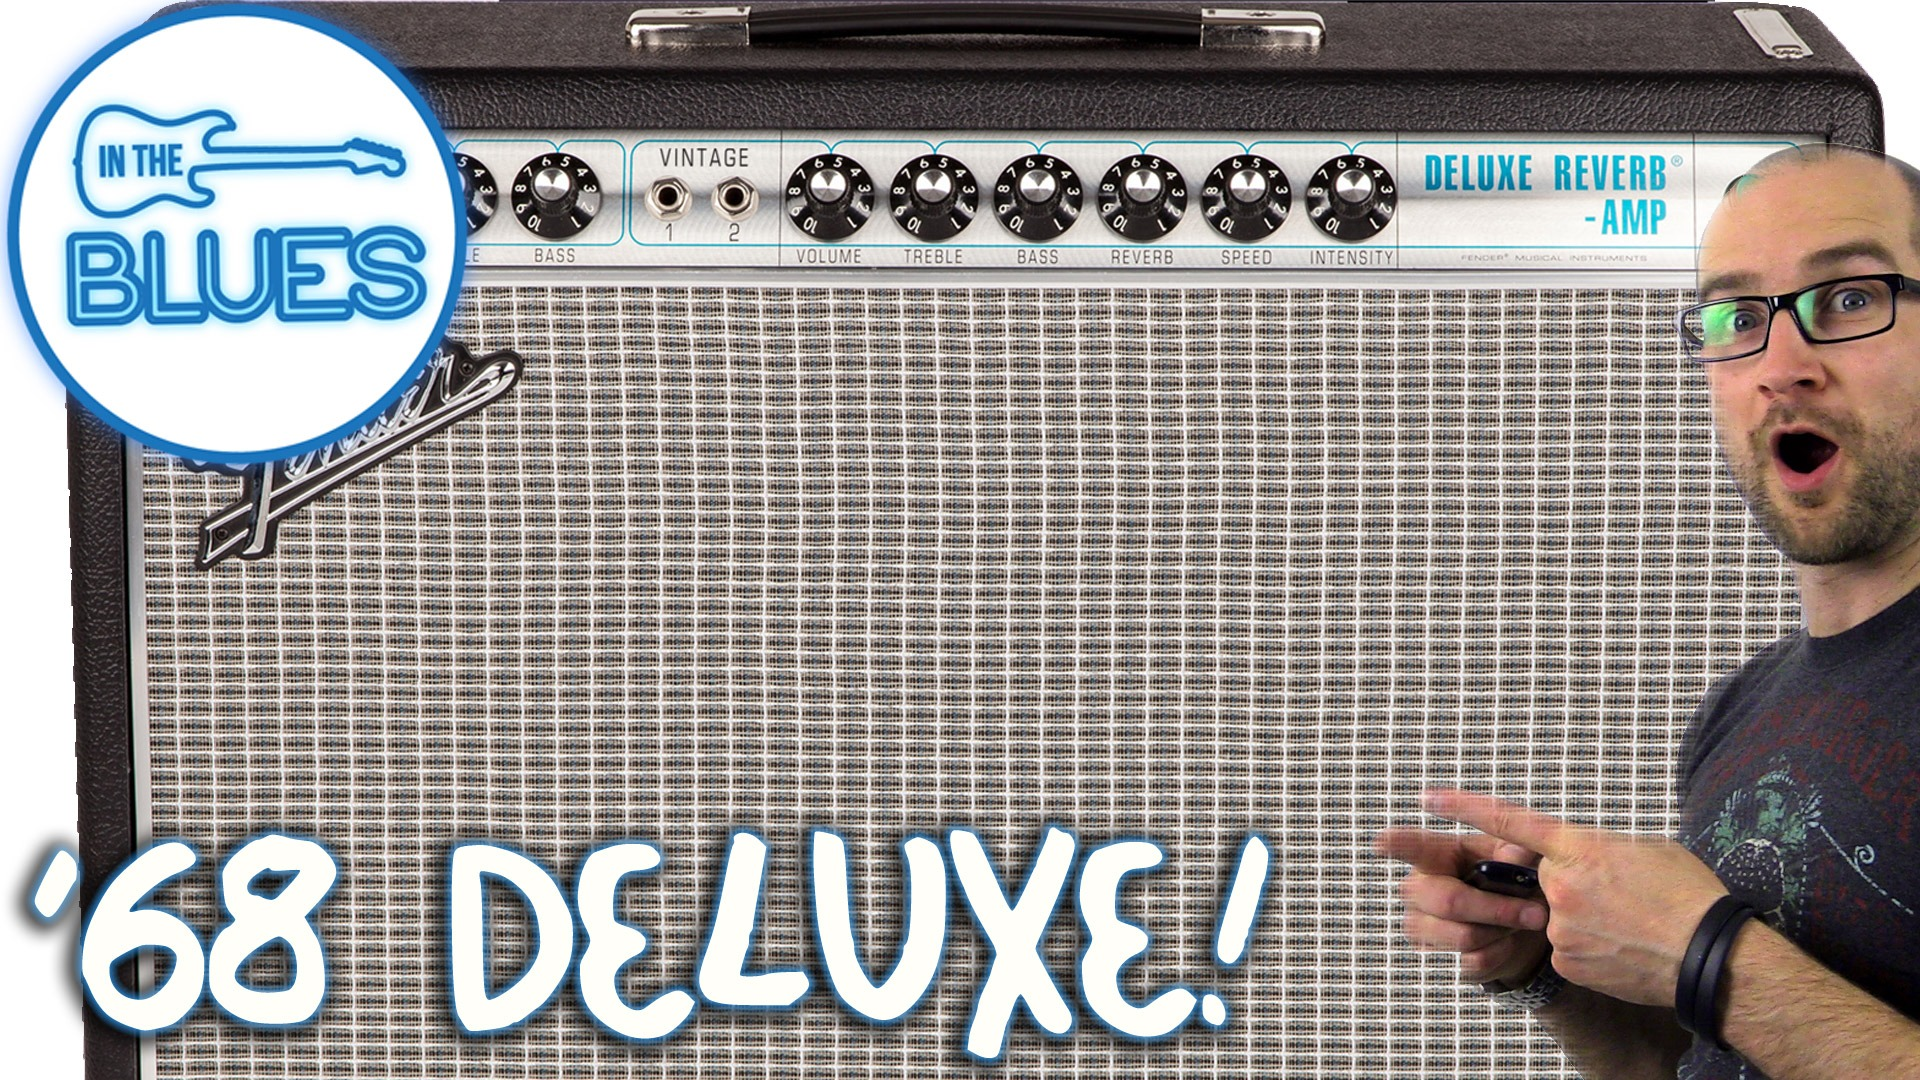 Fender Custom 68 Deluxe Reverb Amplifier Review